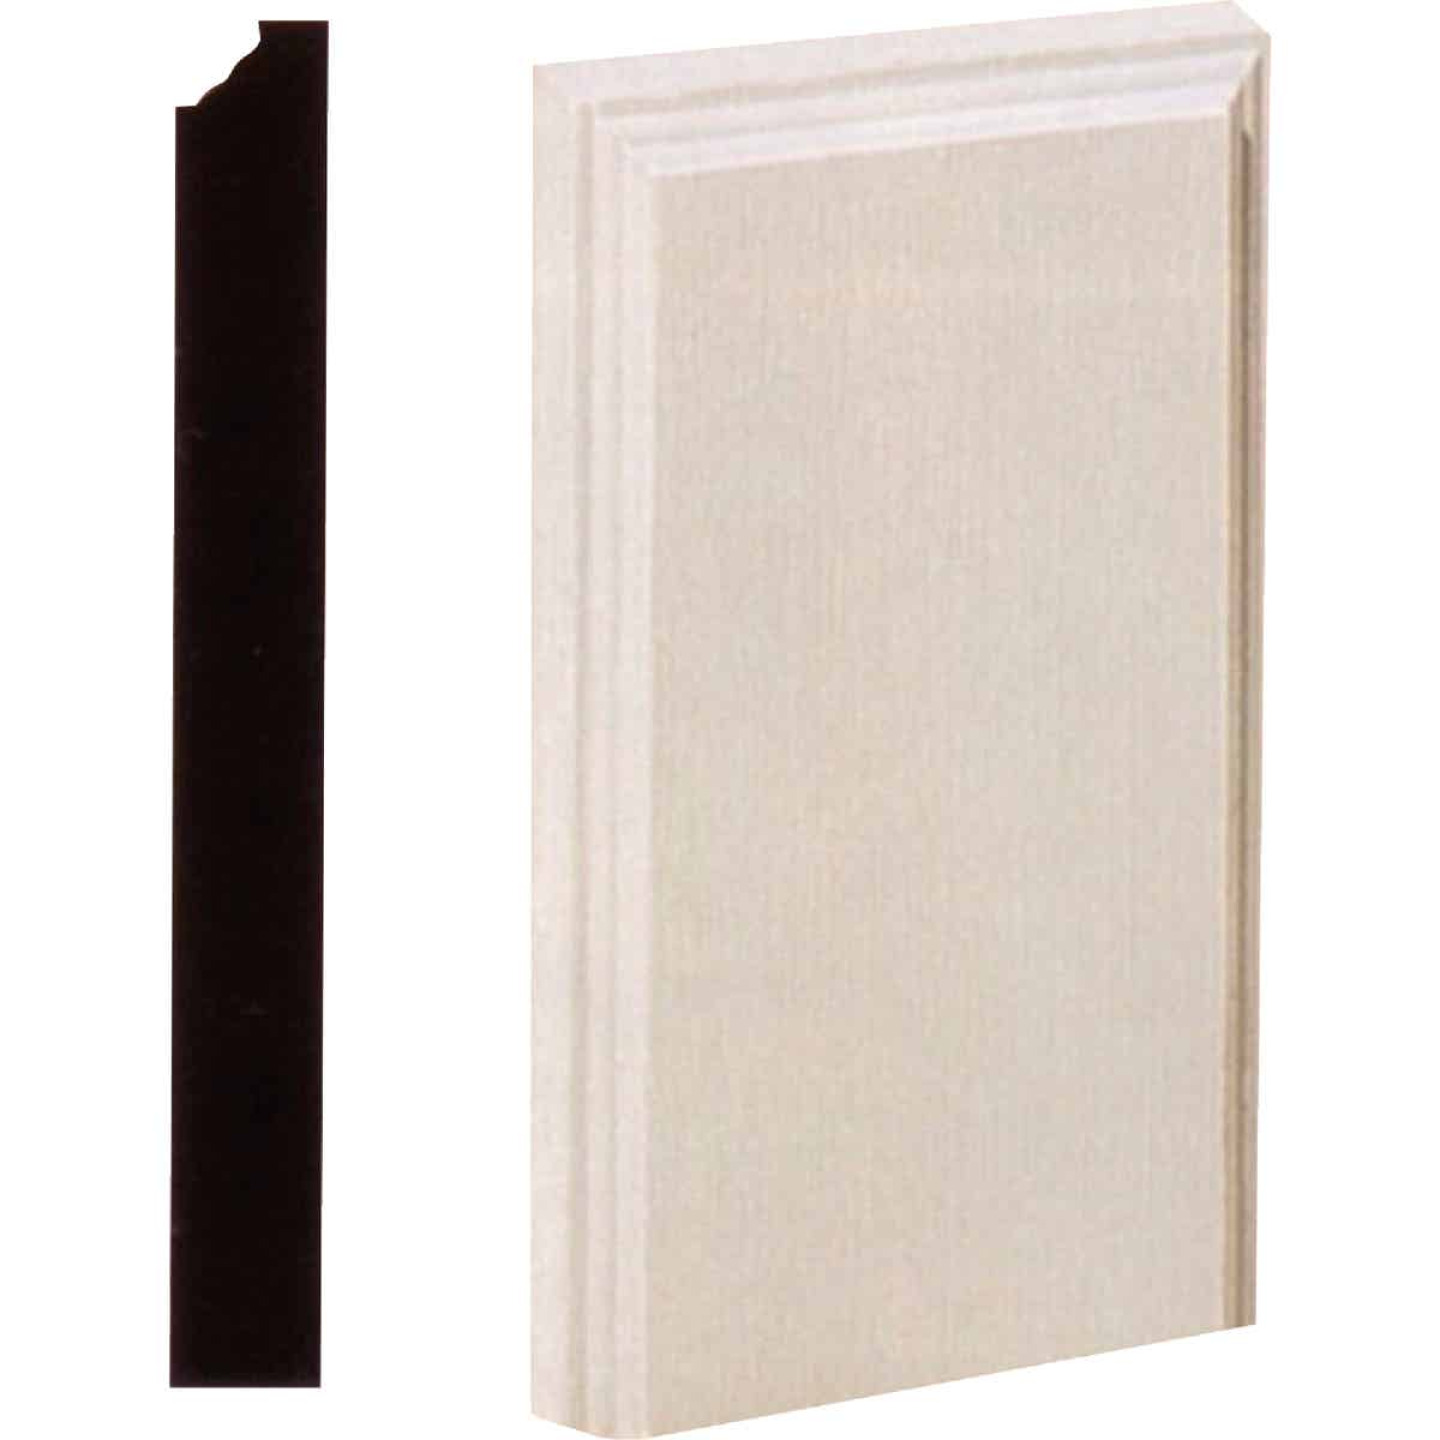 House of Fara 1-1/8 In. W. x 4-1/2 In. H. x 8 In. L. White MDF Plinth Block Image 1